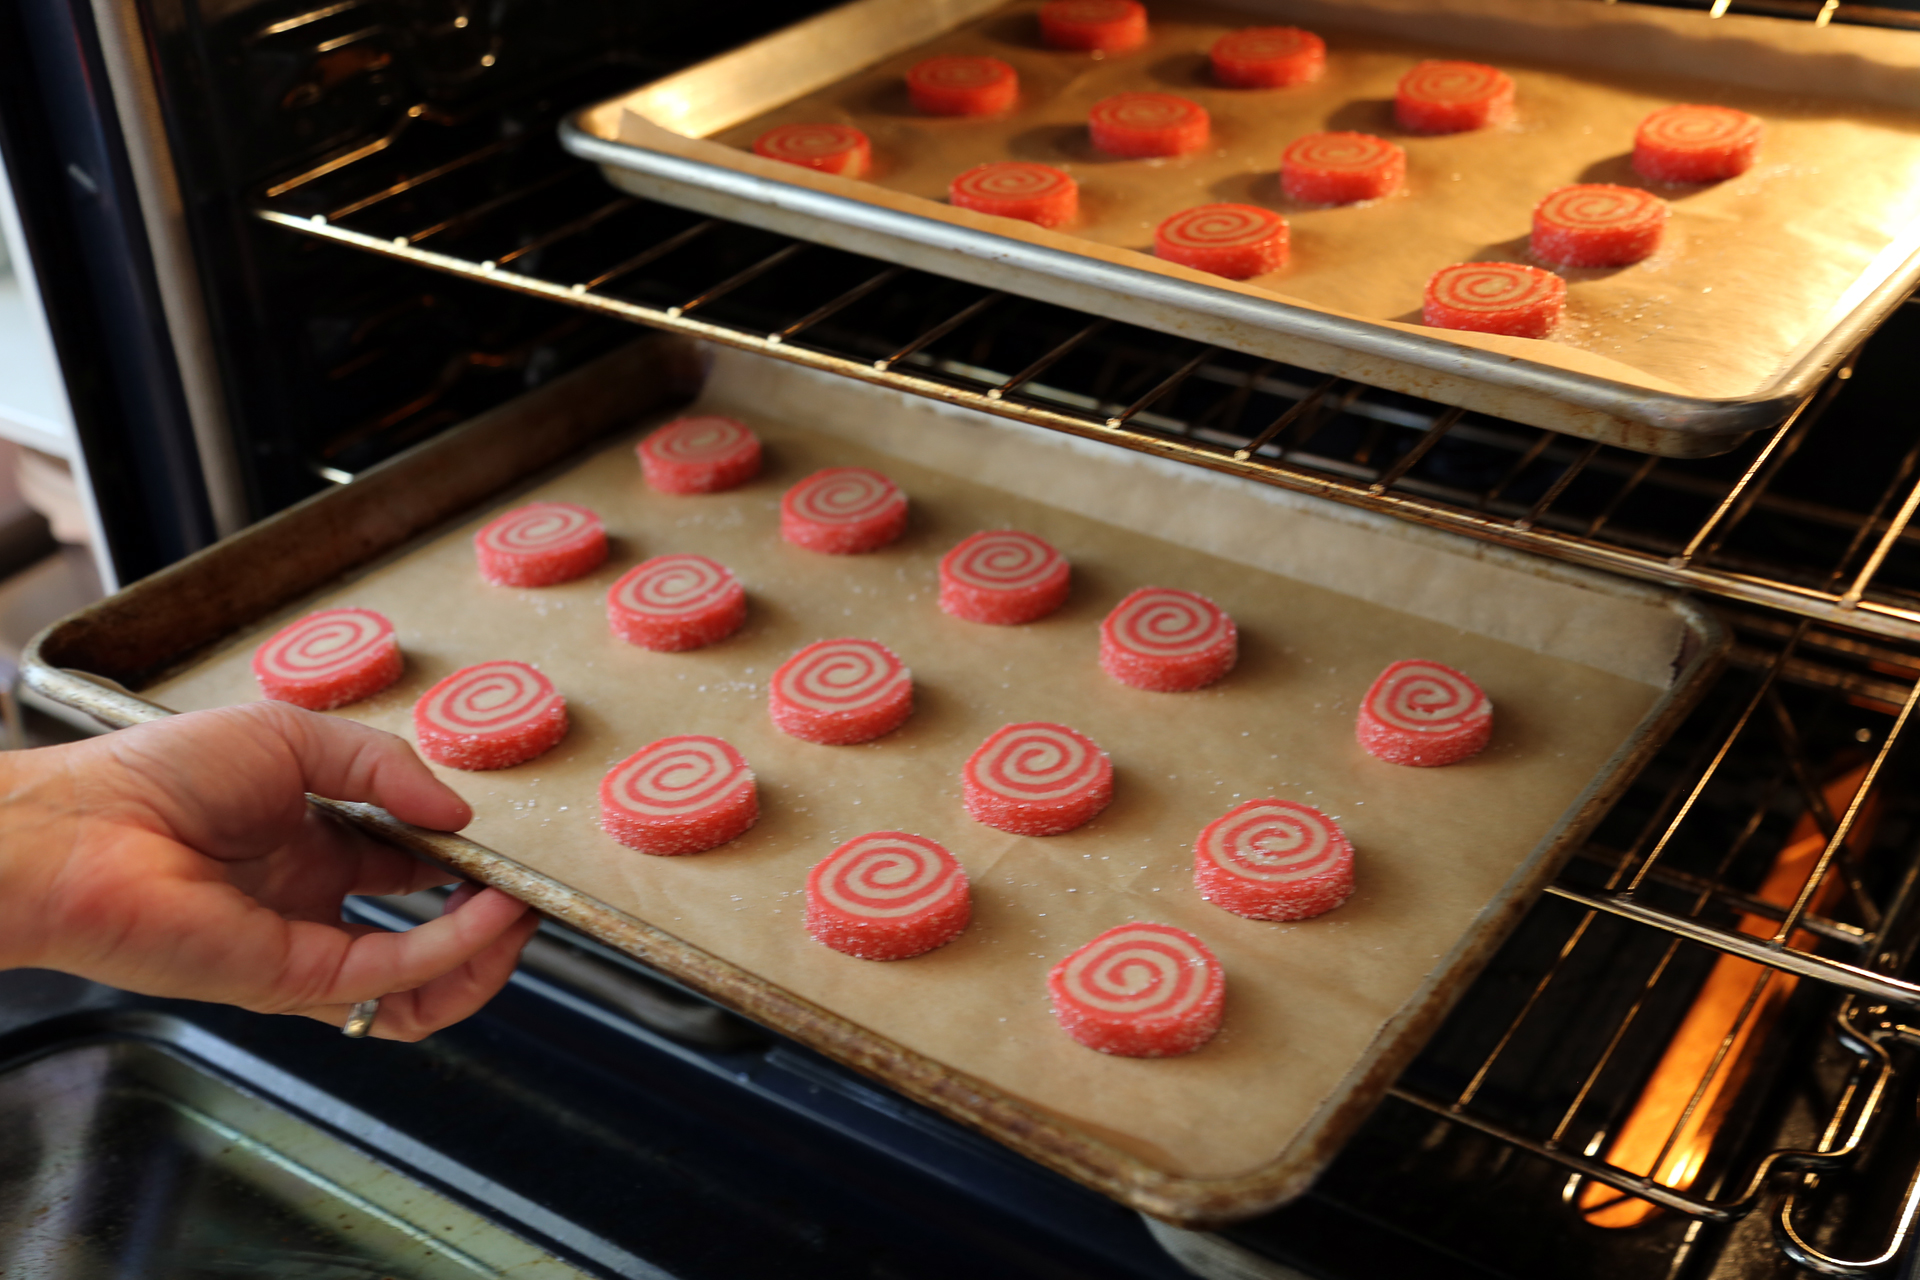 Place the slices on parchment-lined rimmed baking sheets, spacing them evenly. Bake until set but before they begin to brown, about 12 minutes.